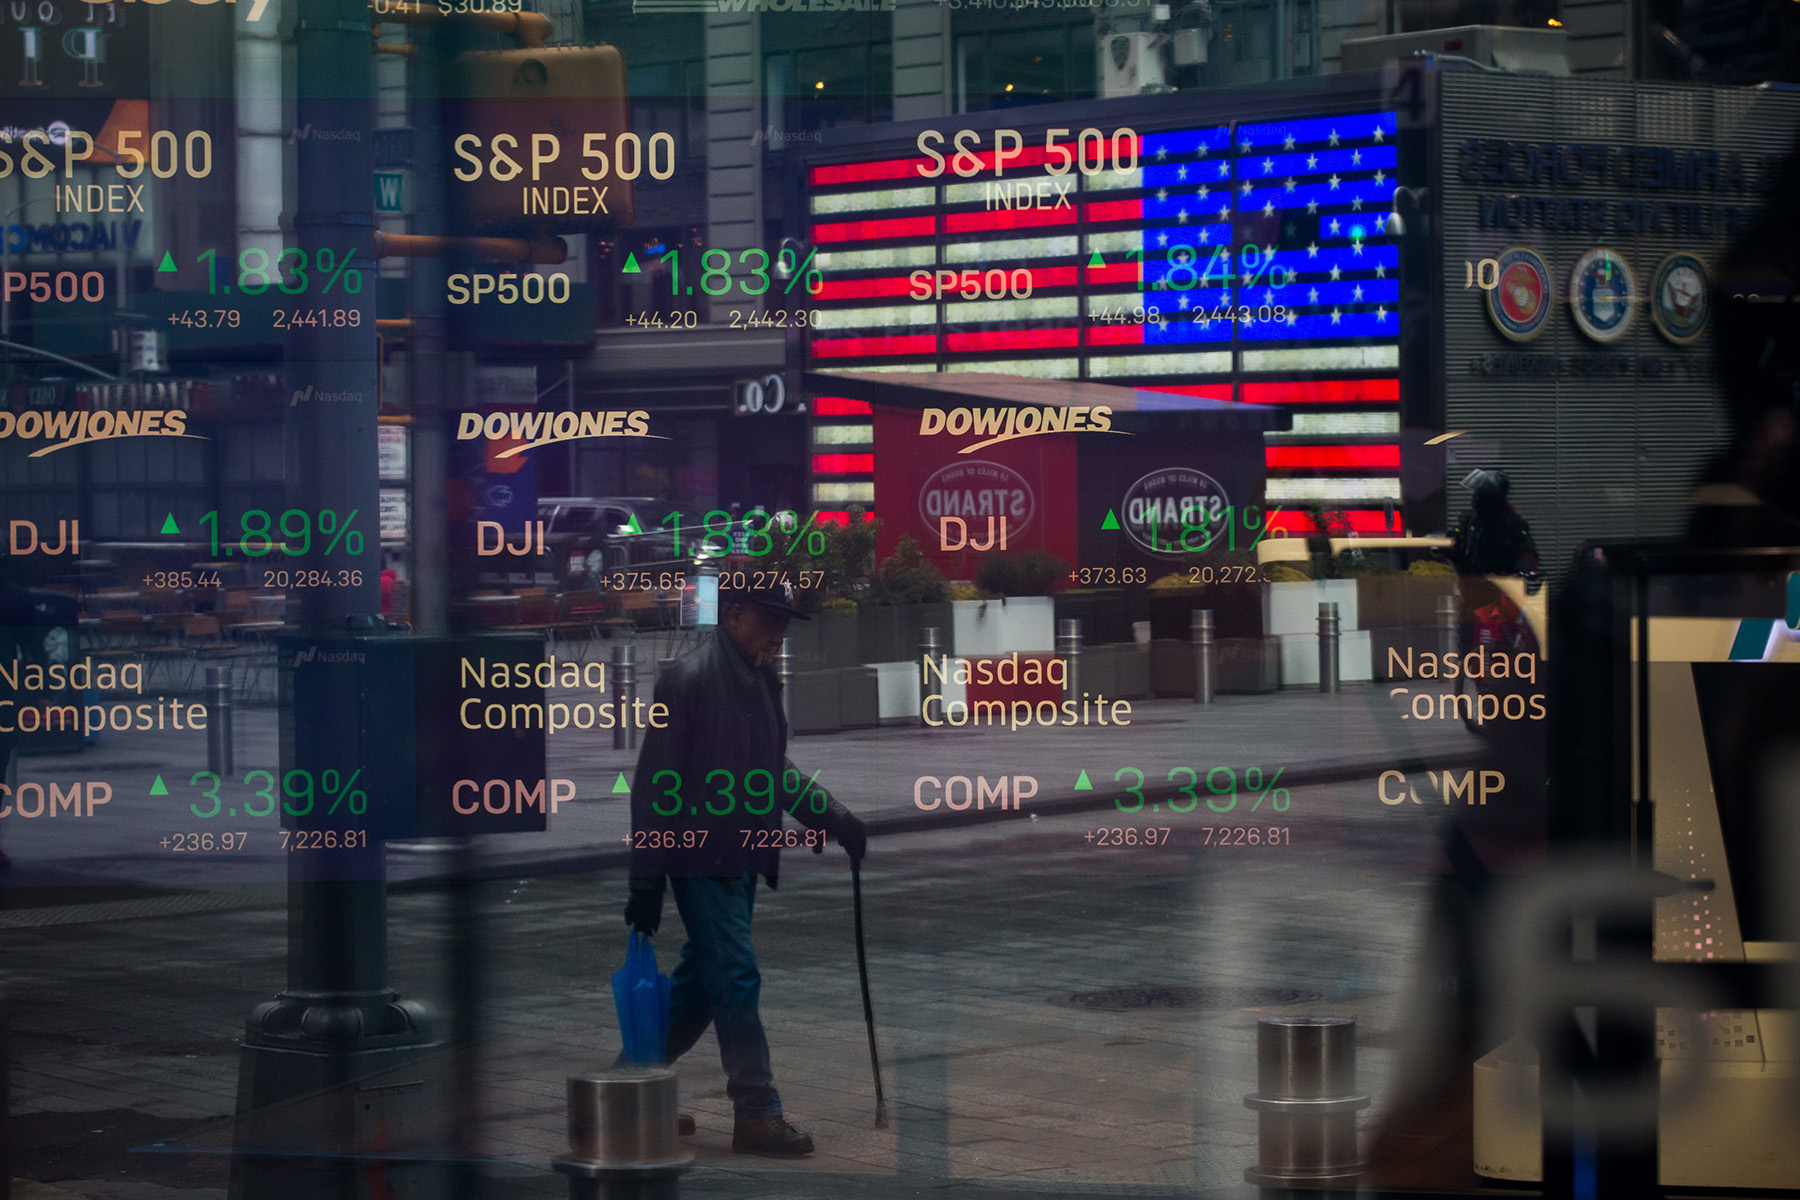 Monitors displaying stock market information are seen through the window of the Nasdaq MarketSite in the Times Square neighborhood of New York. (Getty Images)